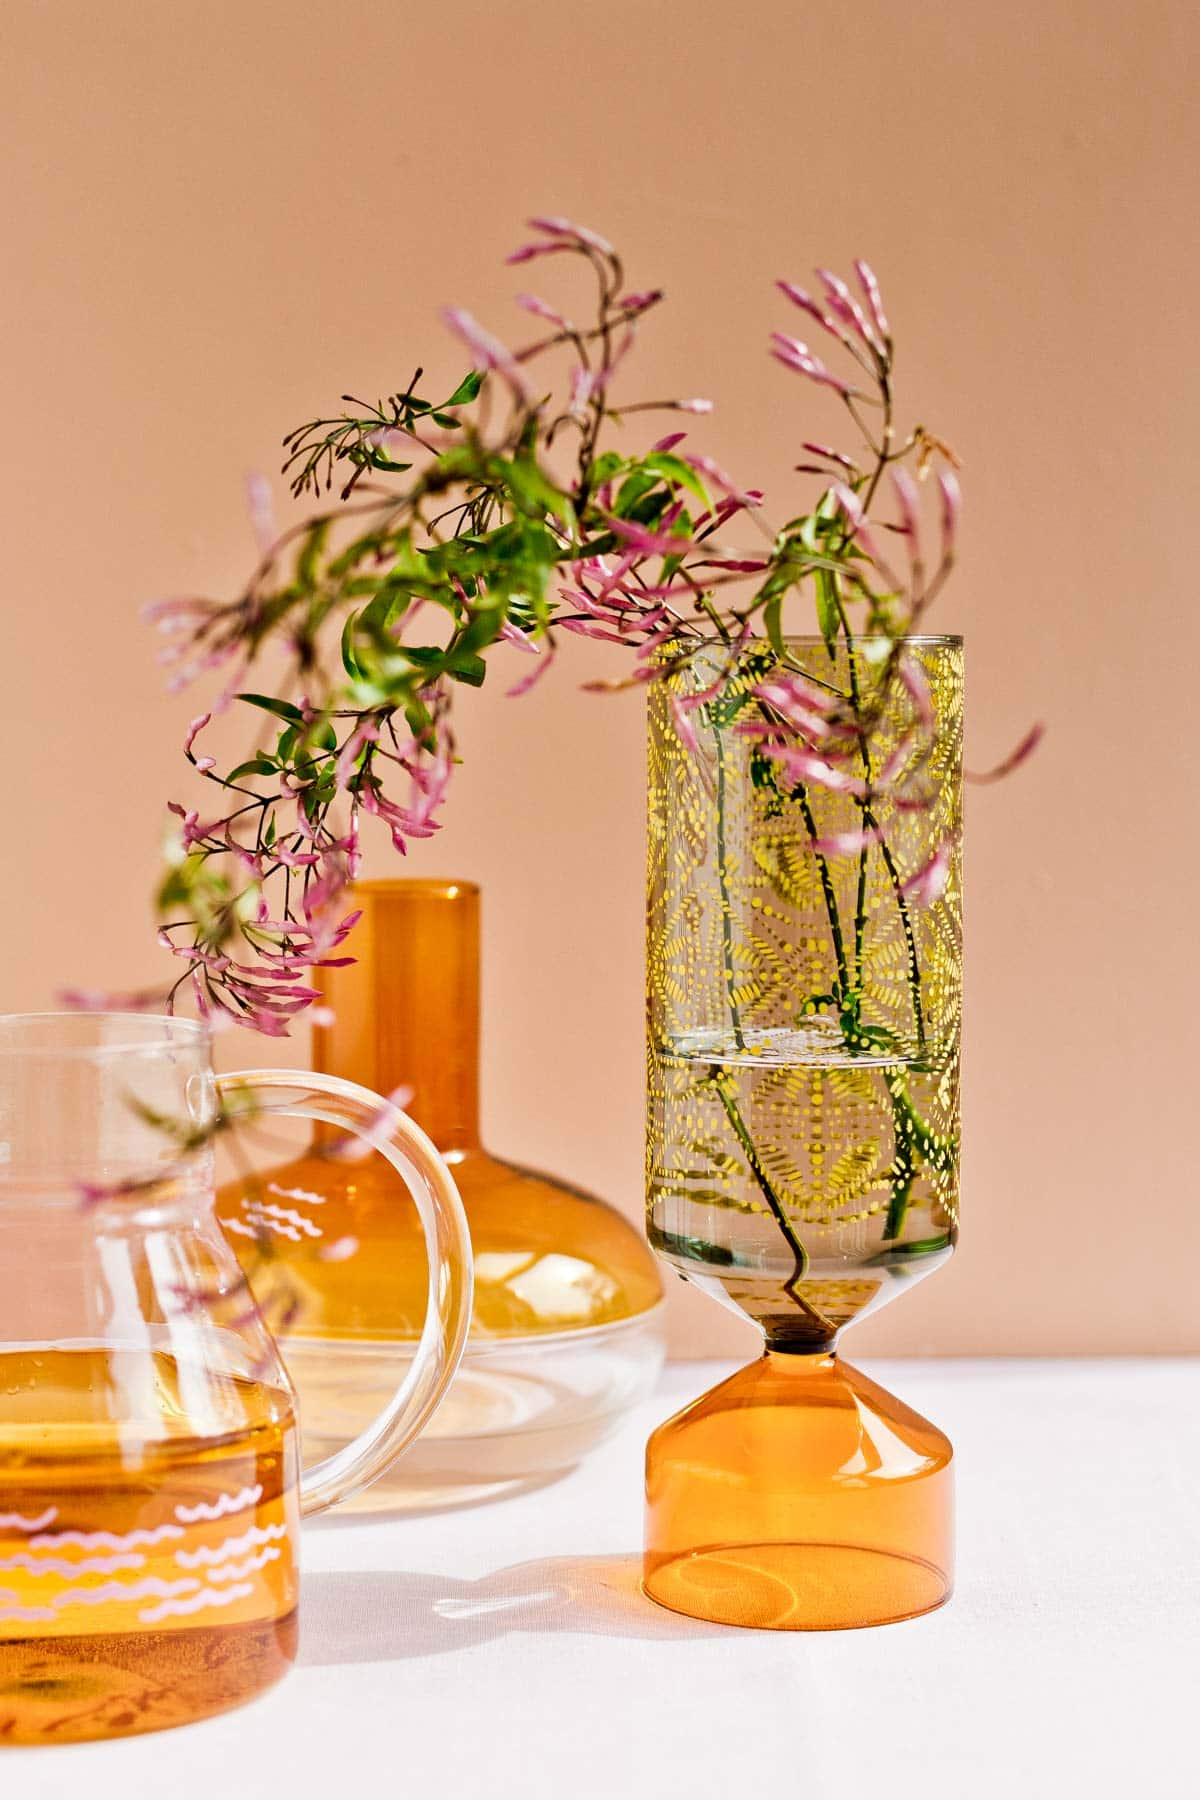 Colorful glass vases and vessels on a table with a neutral background.